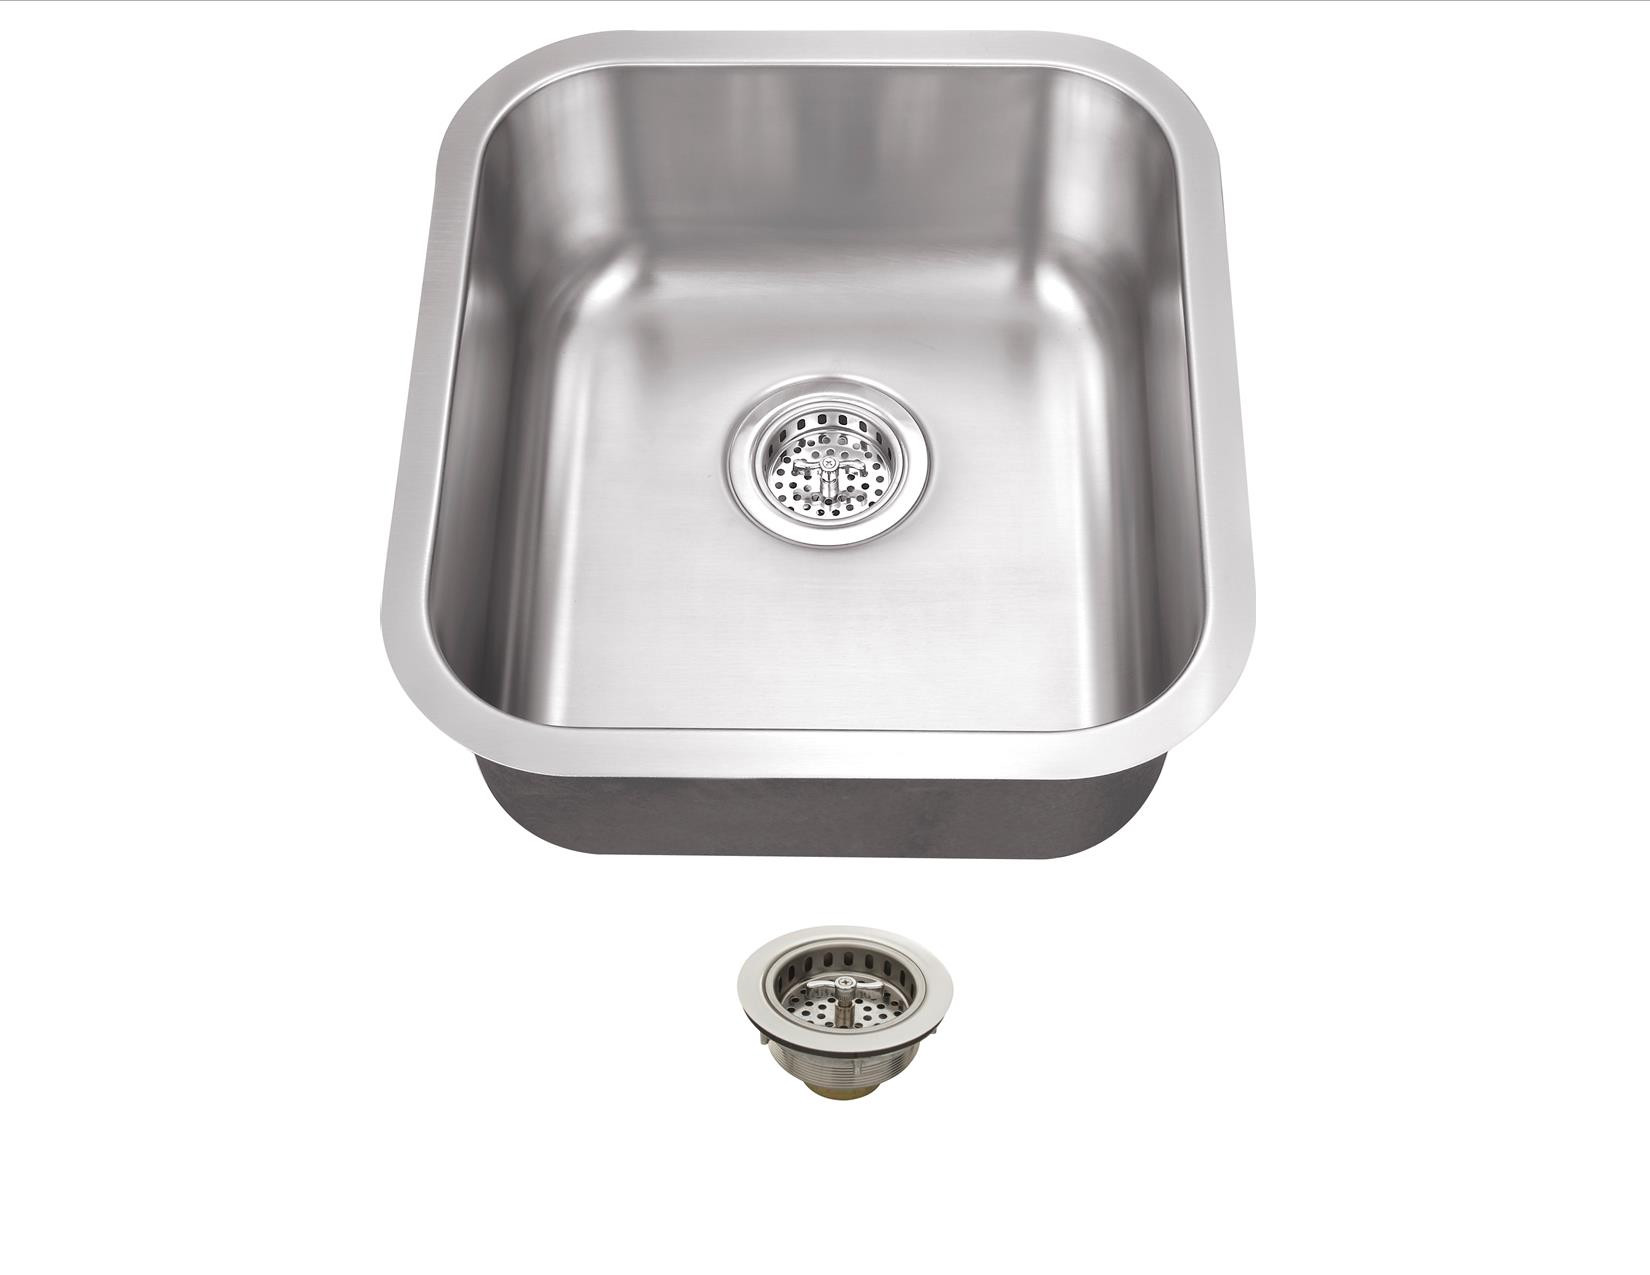 Cahaba CA122SB16 18 Gauge S. Steel Single Bowl Bar Sink With Drain Assembly